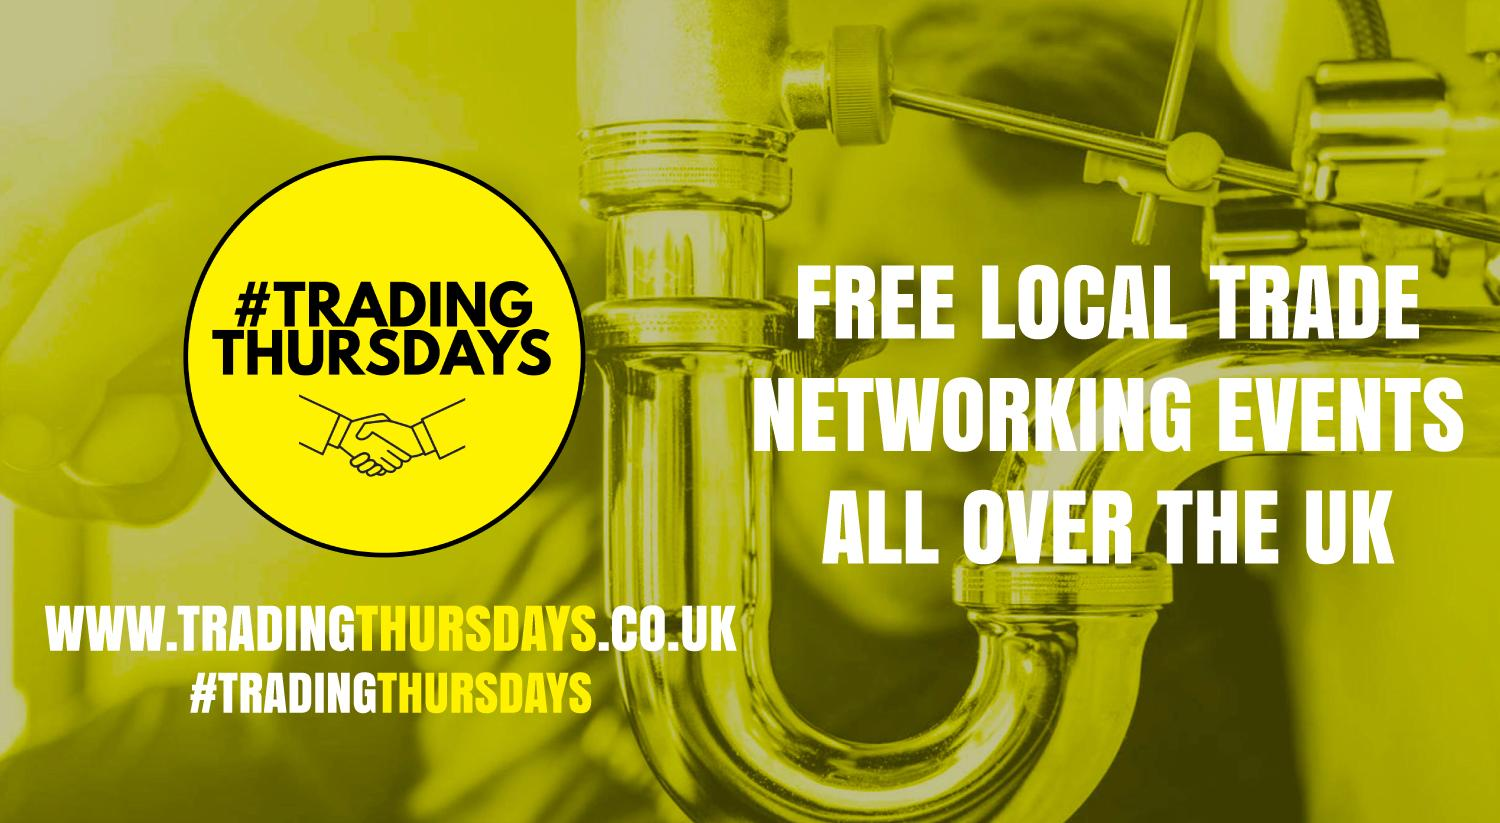 Trading Thursdays! Free networking event for traders in Henley-on-Thames